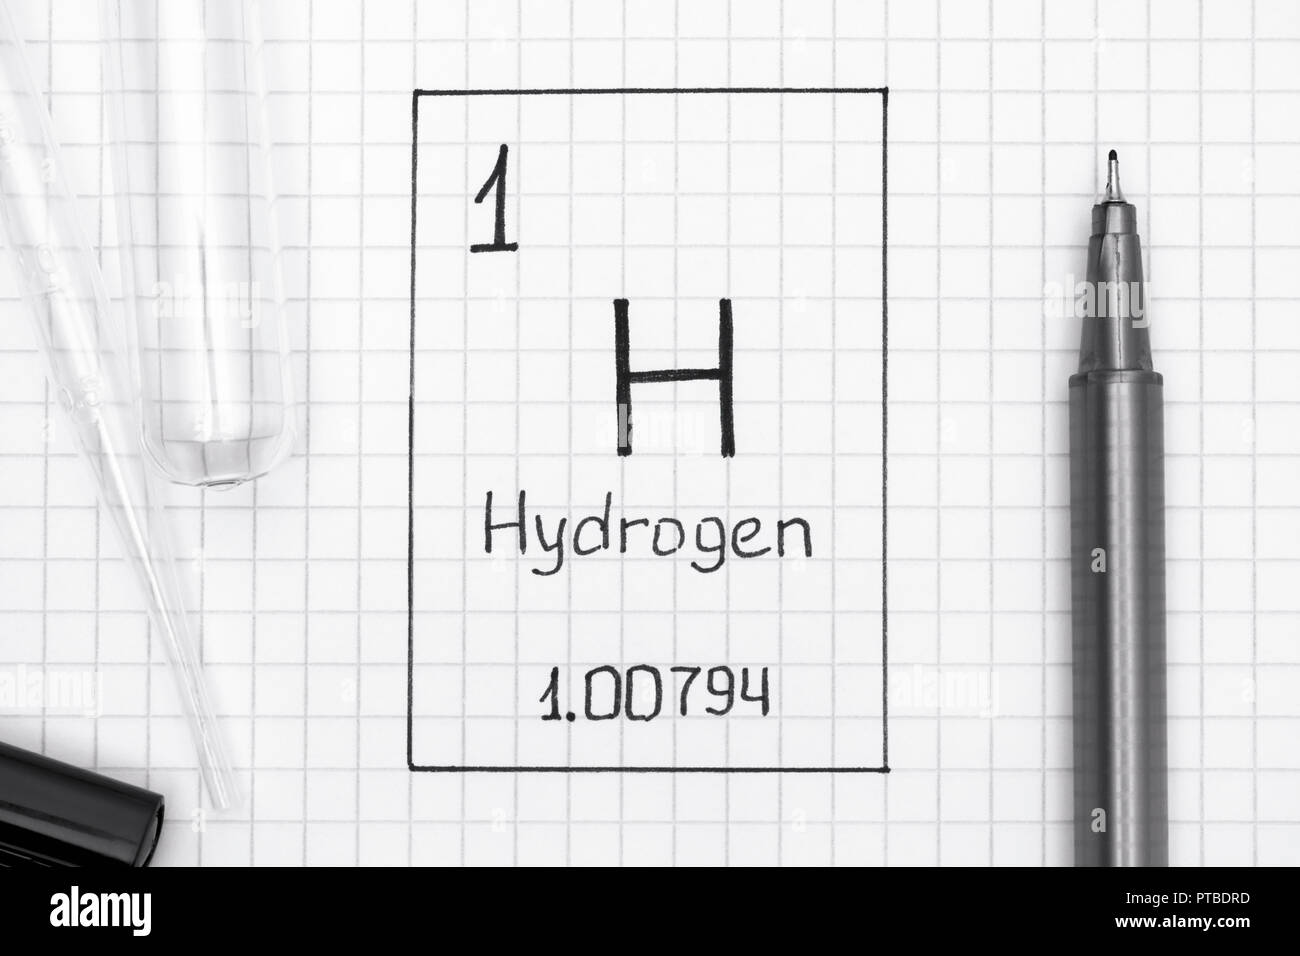 Periodic Table Hydrogen Stock Photos Periodic Table Hydrogen Stock